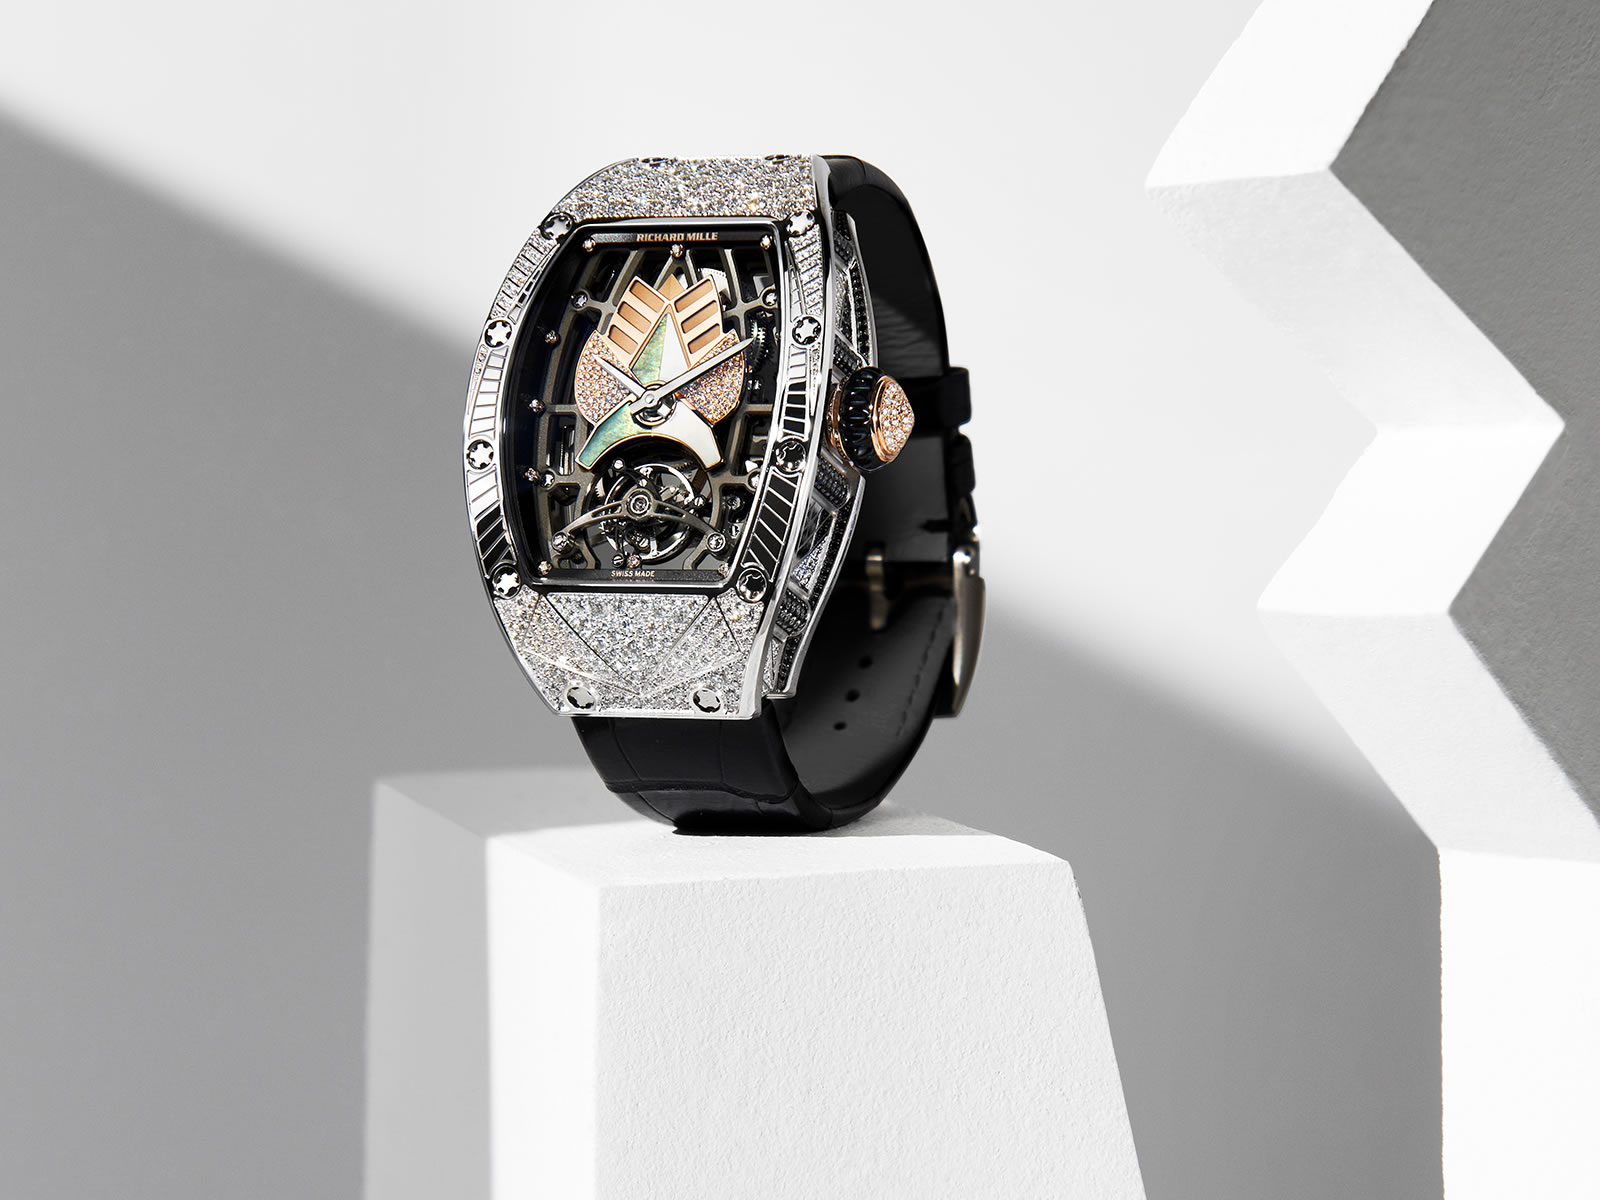 richard-mille-rm-71-01-automatic-tourbillon-talisman-5-.jpg